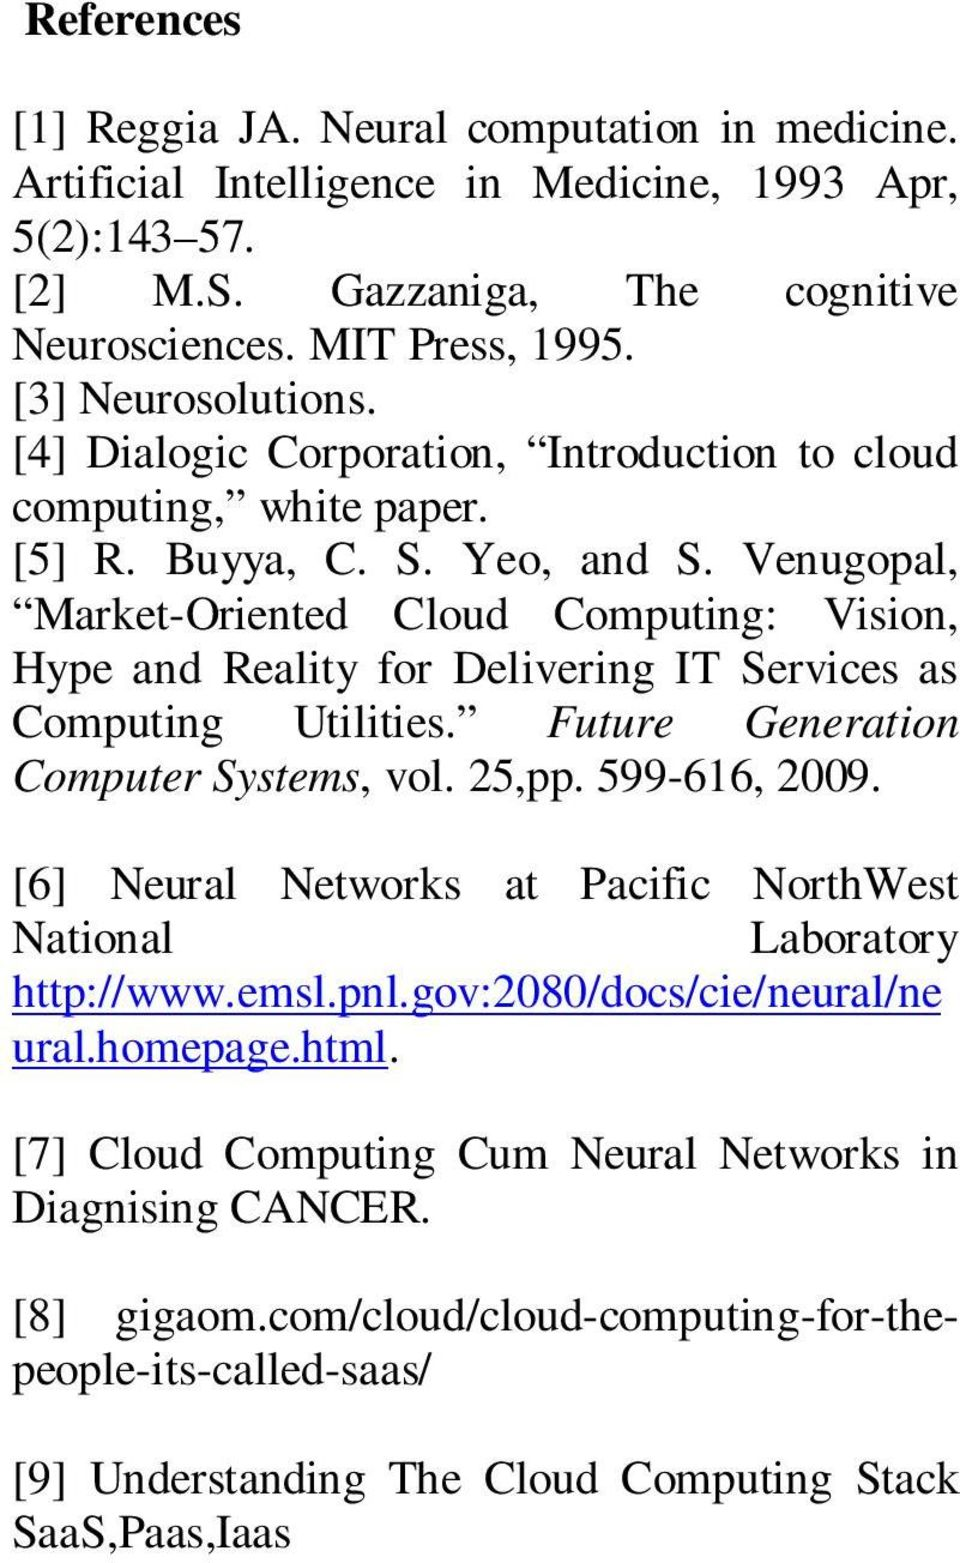 Venugopal, Market-Oriented Cloud Computing: Vision, Hype and Reality for Delivering IT Services as Computing Utilities. Future Generation Computer Systems, vol. 25,pp. 599-616, 2009.